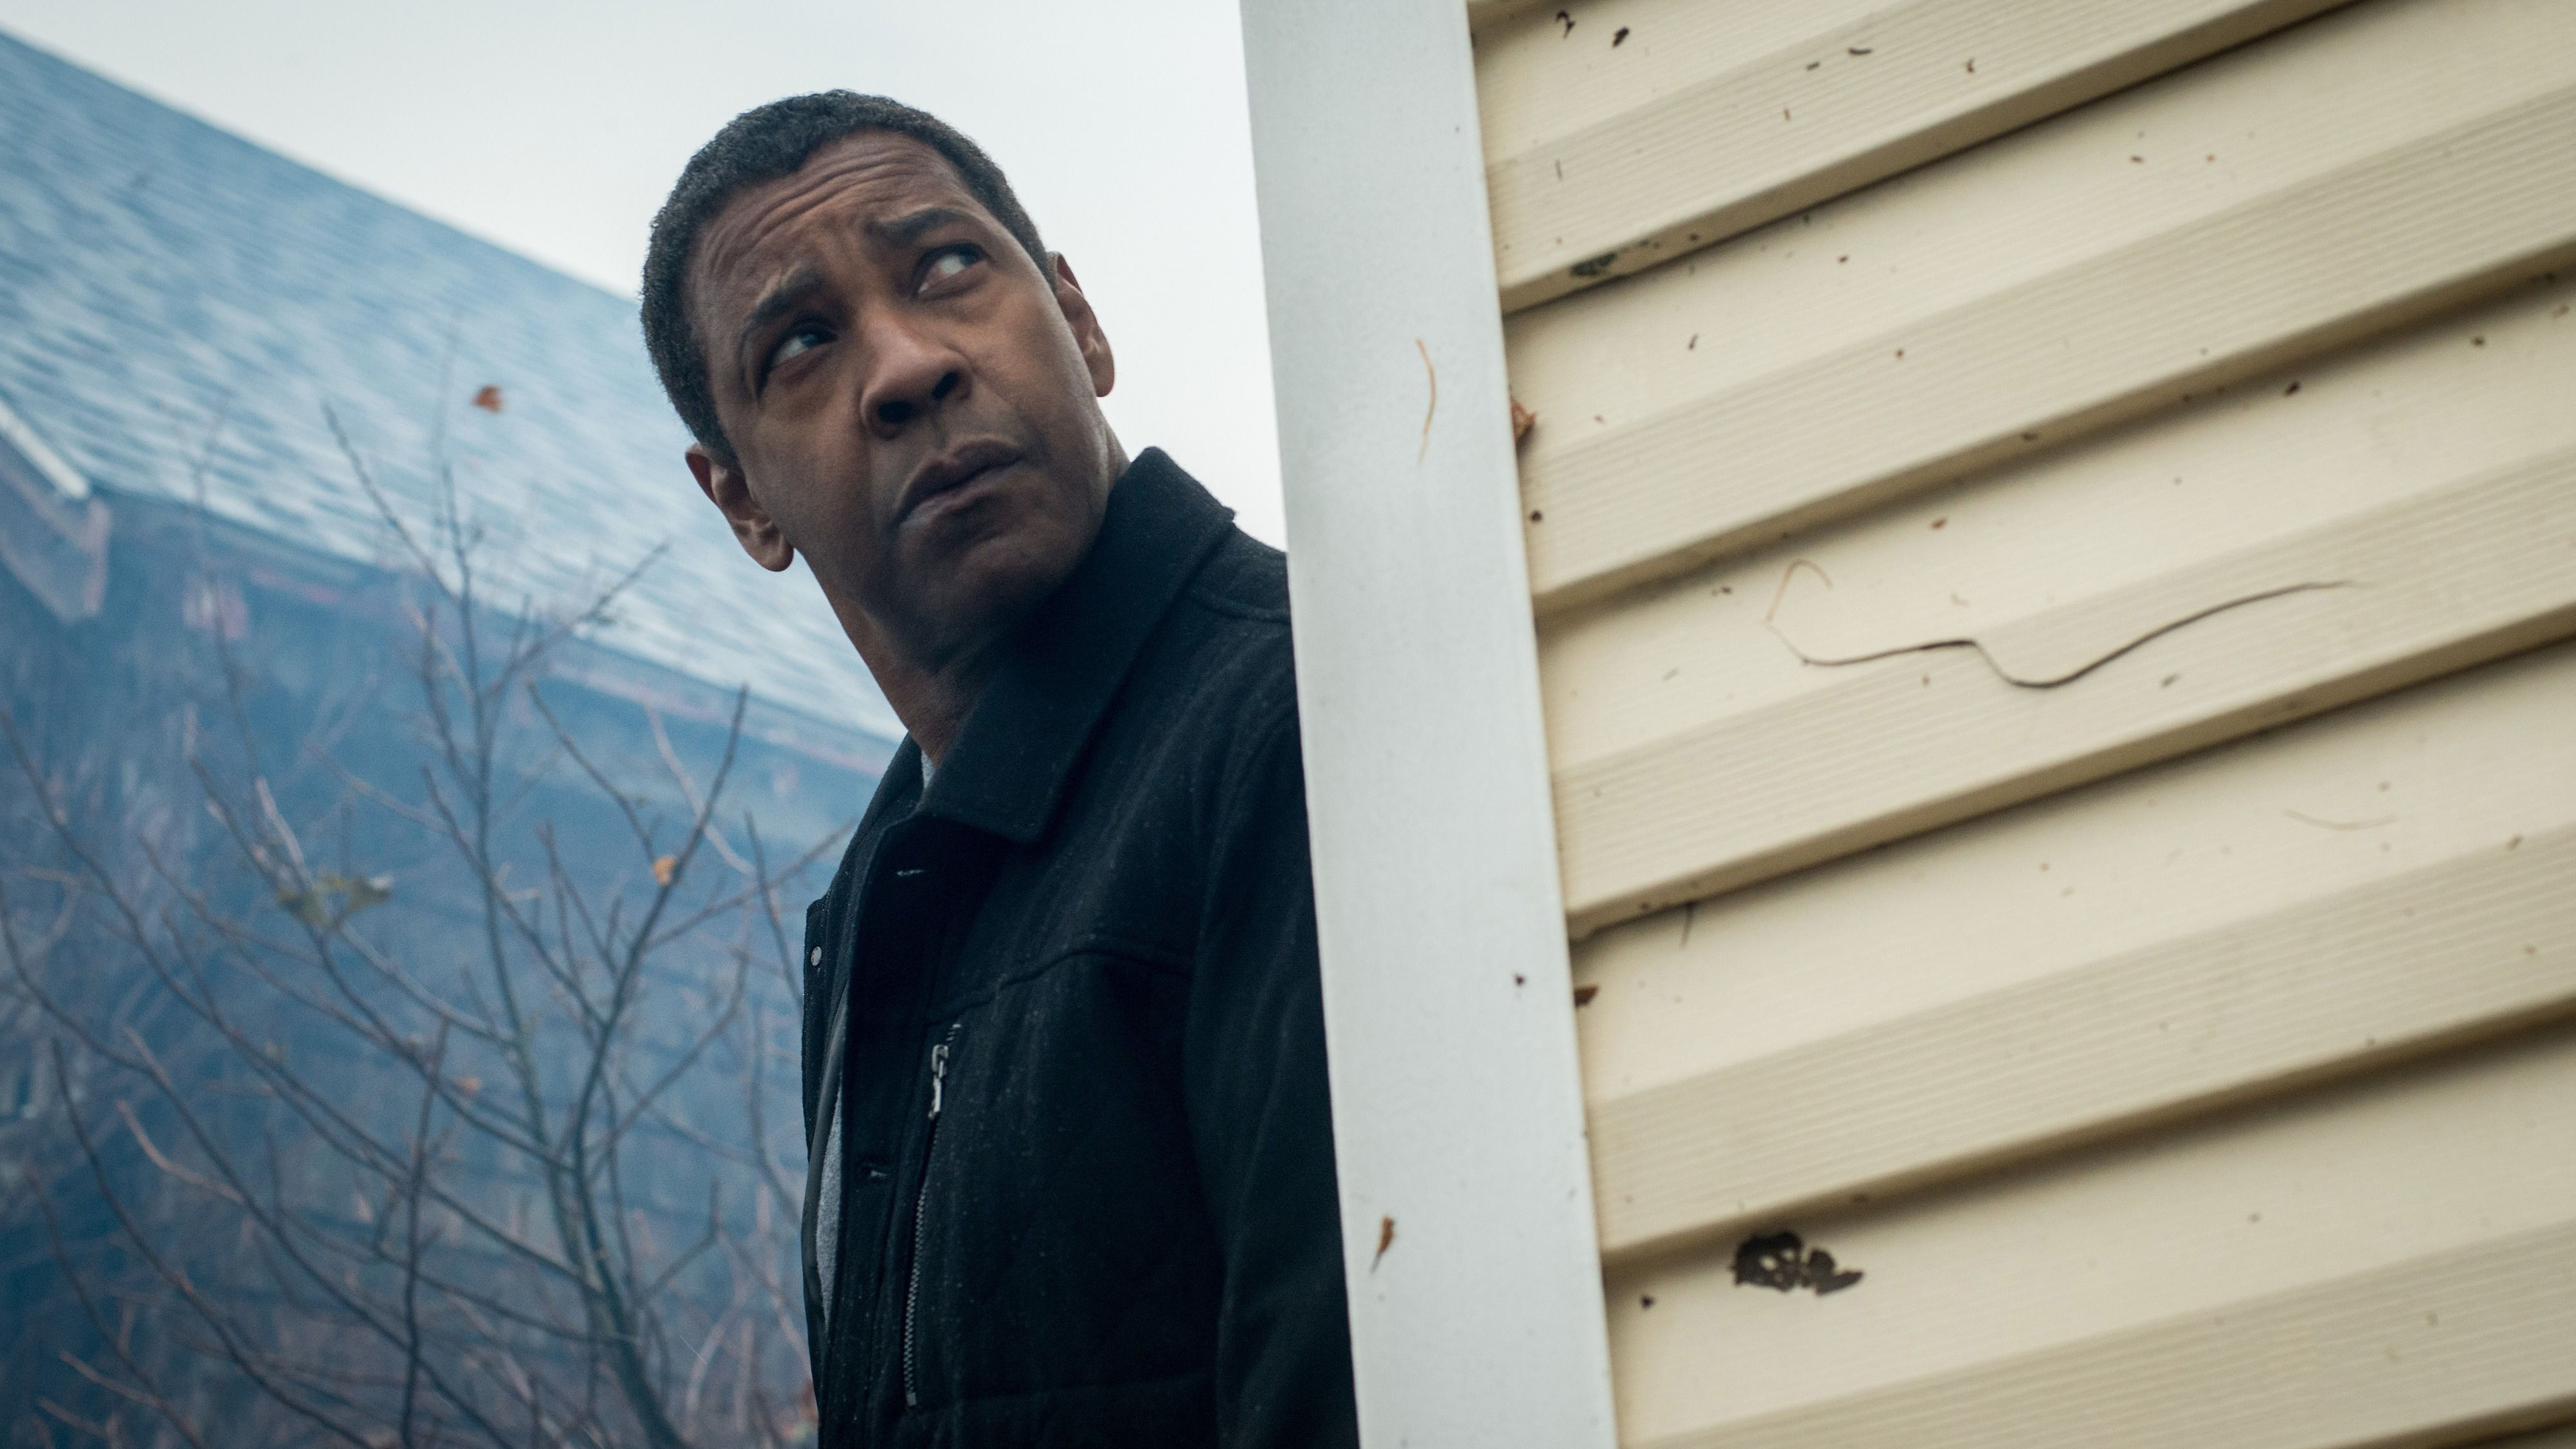 denzel washington in the equalizer 2 movie 1537645100 - Denzel Washington In The Equalizer 2 Movie - the equalizer 2 wallpapers, movies wallpapers, hd-wallpapers, denzel washington wallpapers, 4k-wallpapers, 2018-movies-wallpapers